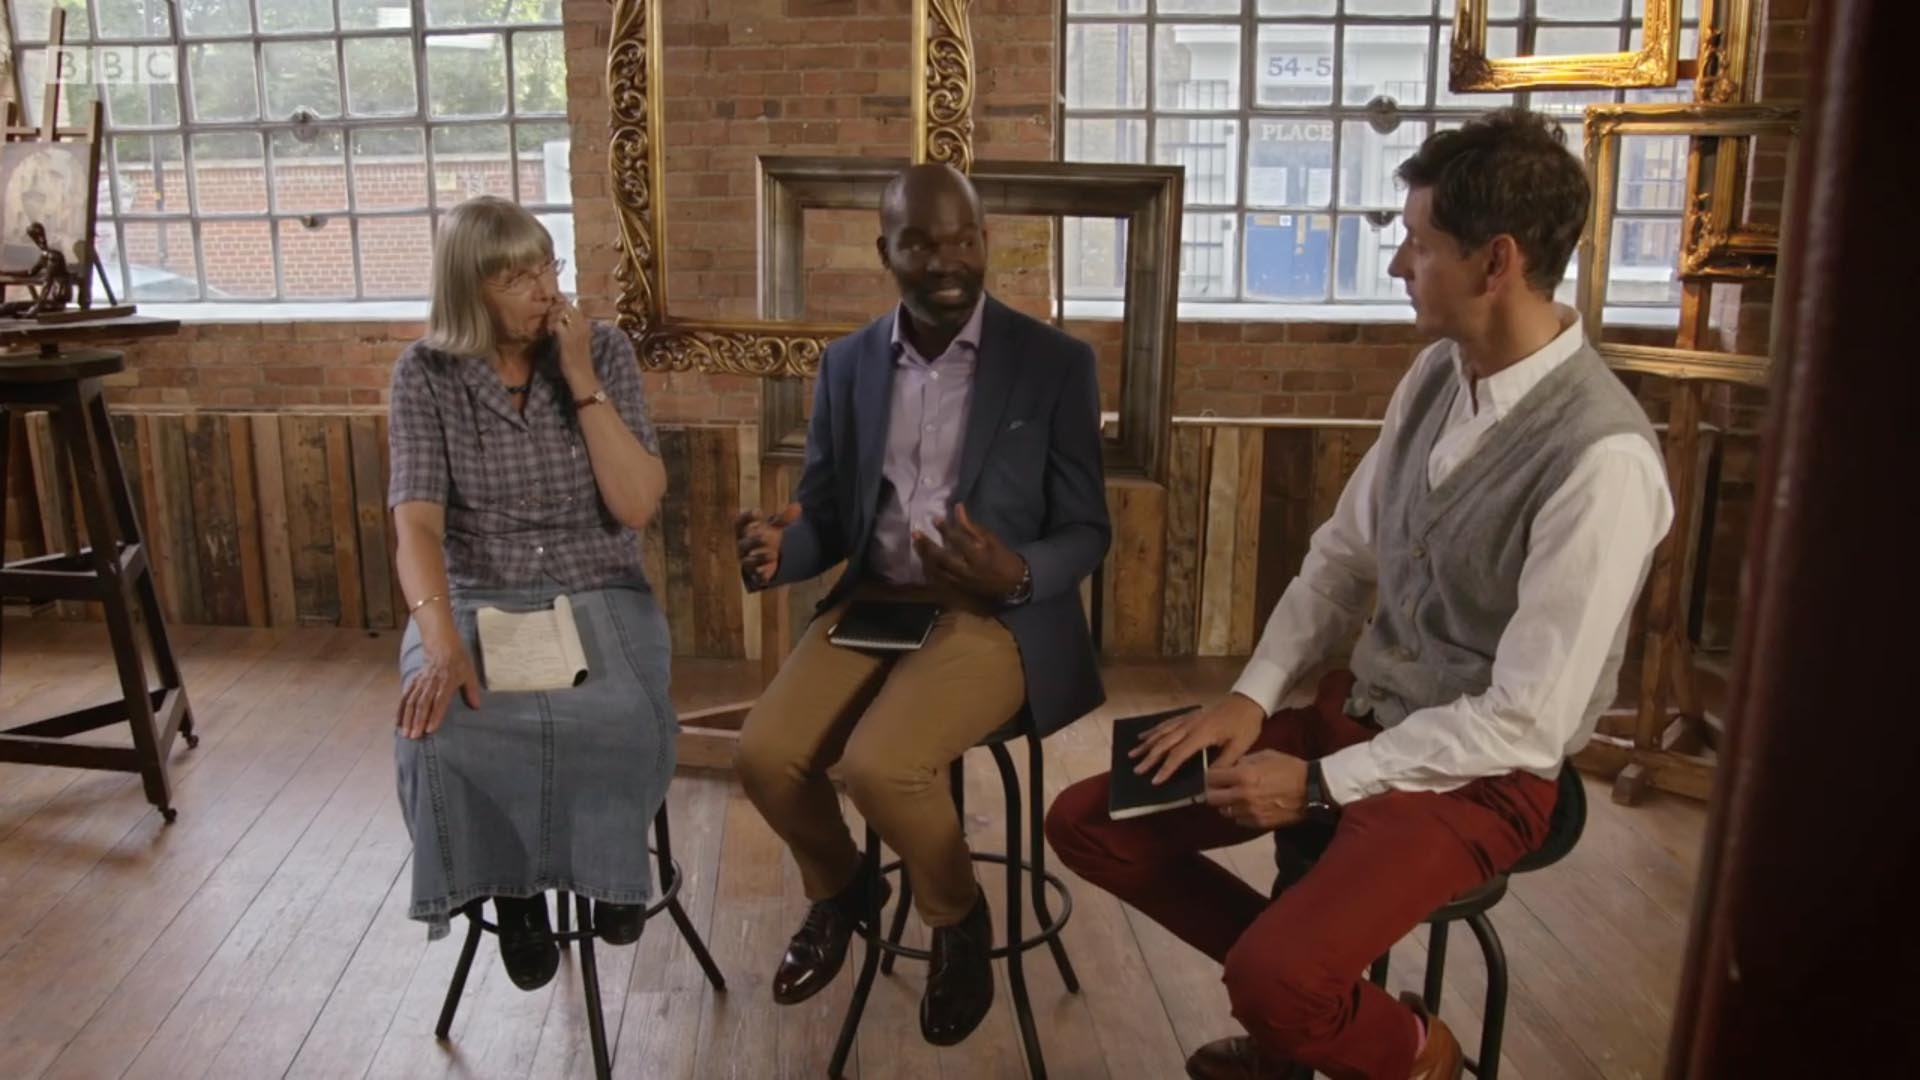 David Dibosa (centre) appears with fellow judges Daphne Todd OBE (left) and Lachlan Goudie (right) on BBC One's Big Painting Challenge on Sunday 12 February 2017.